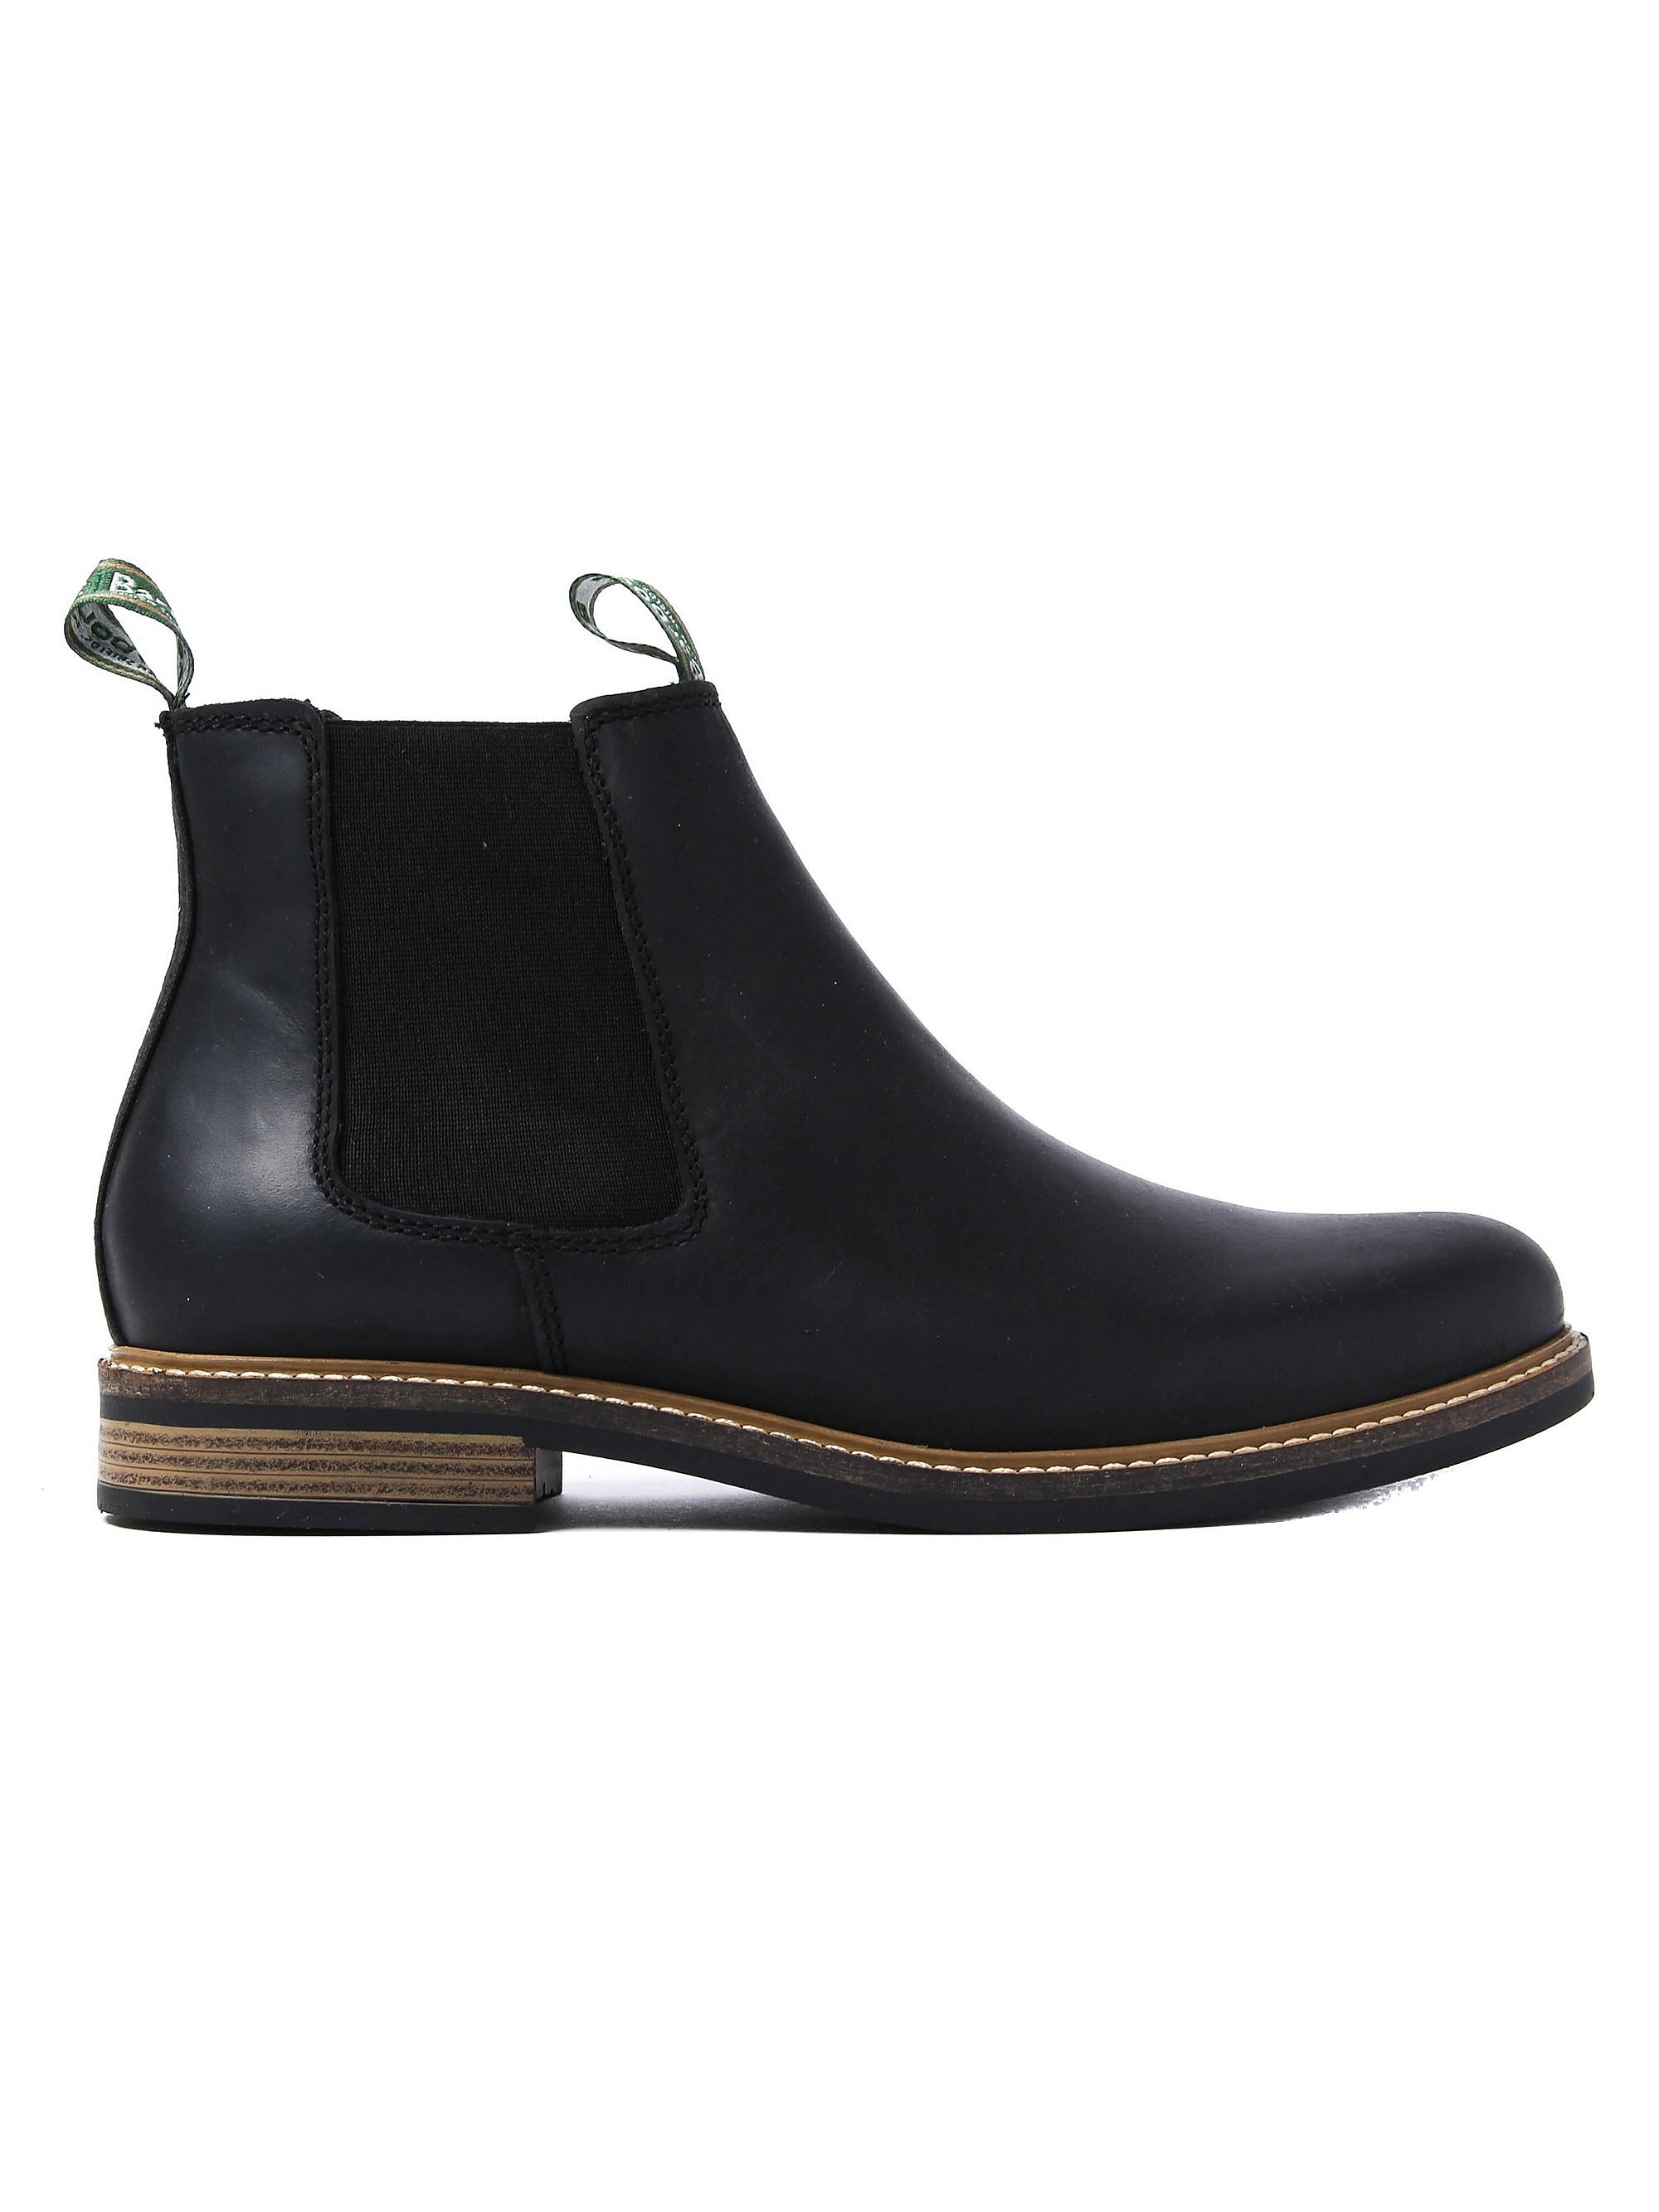 Barbour Men's Farsley Leather Chelsea Boots - Black